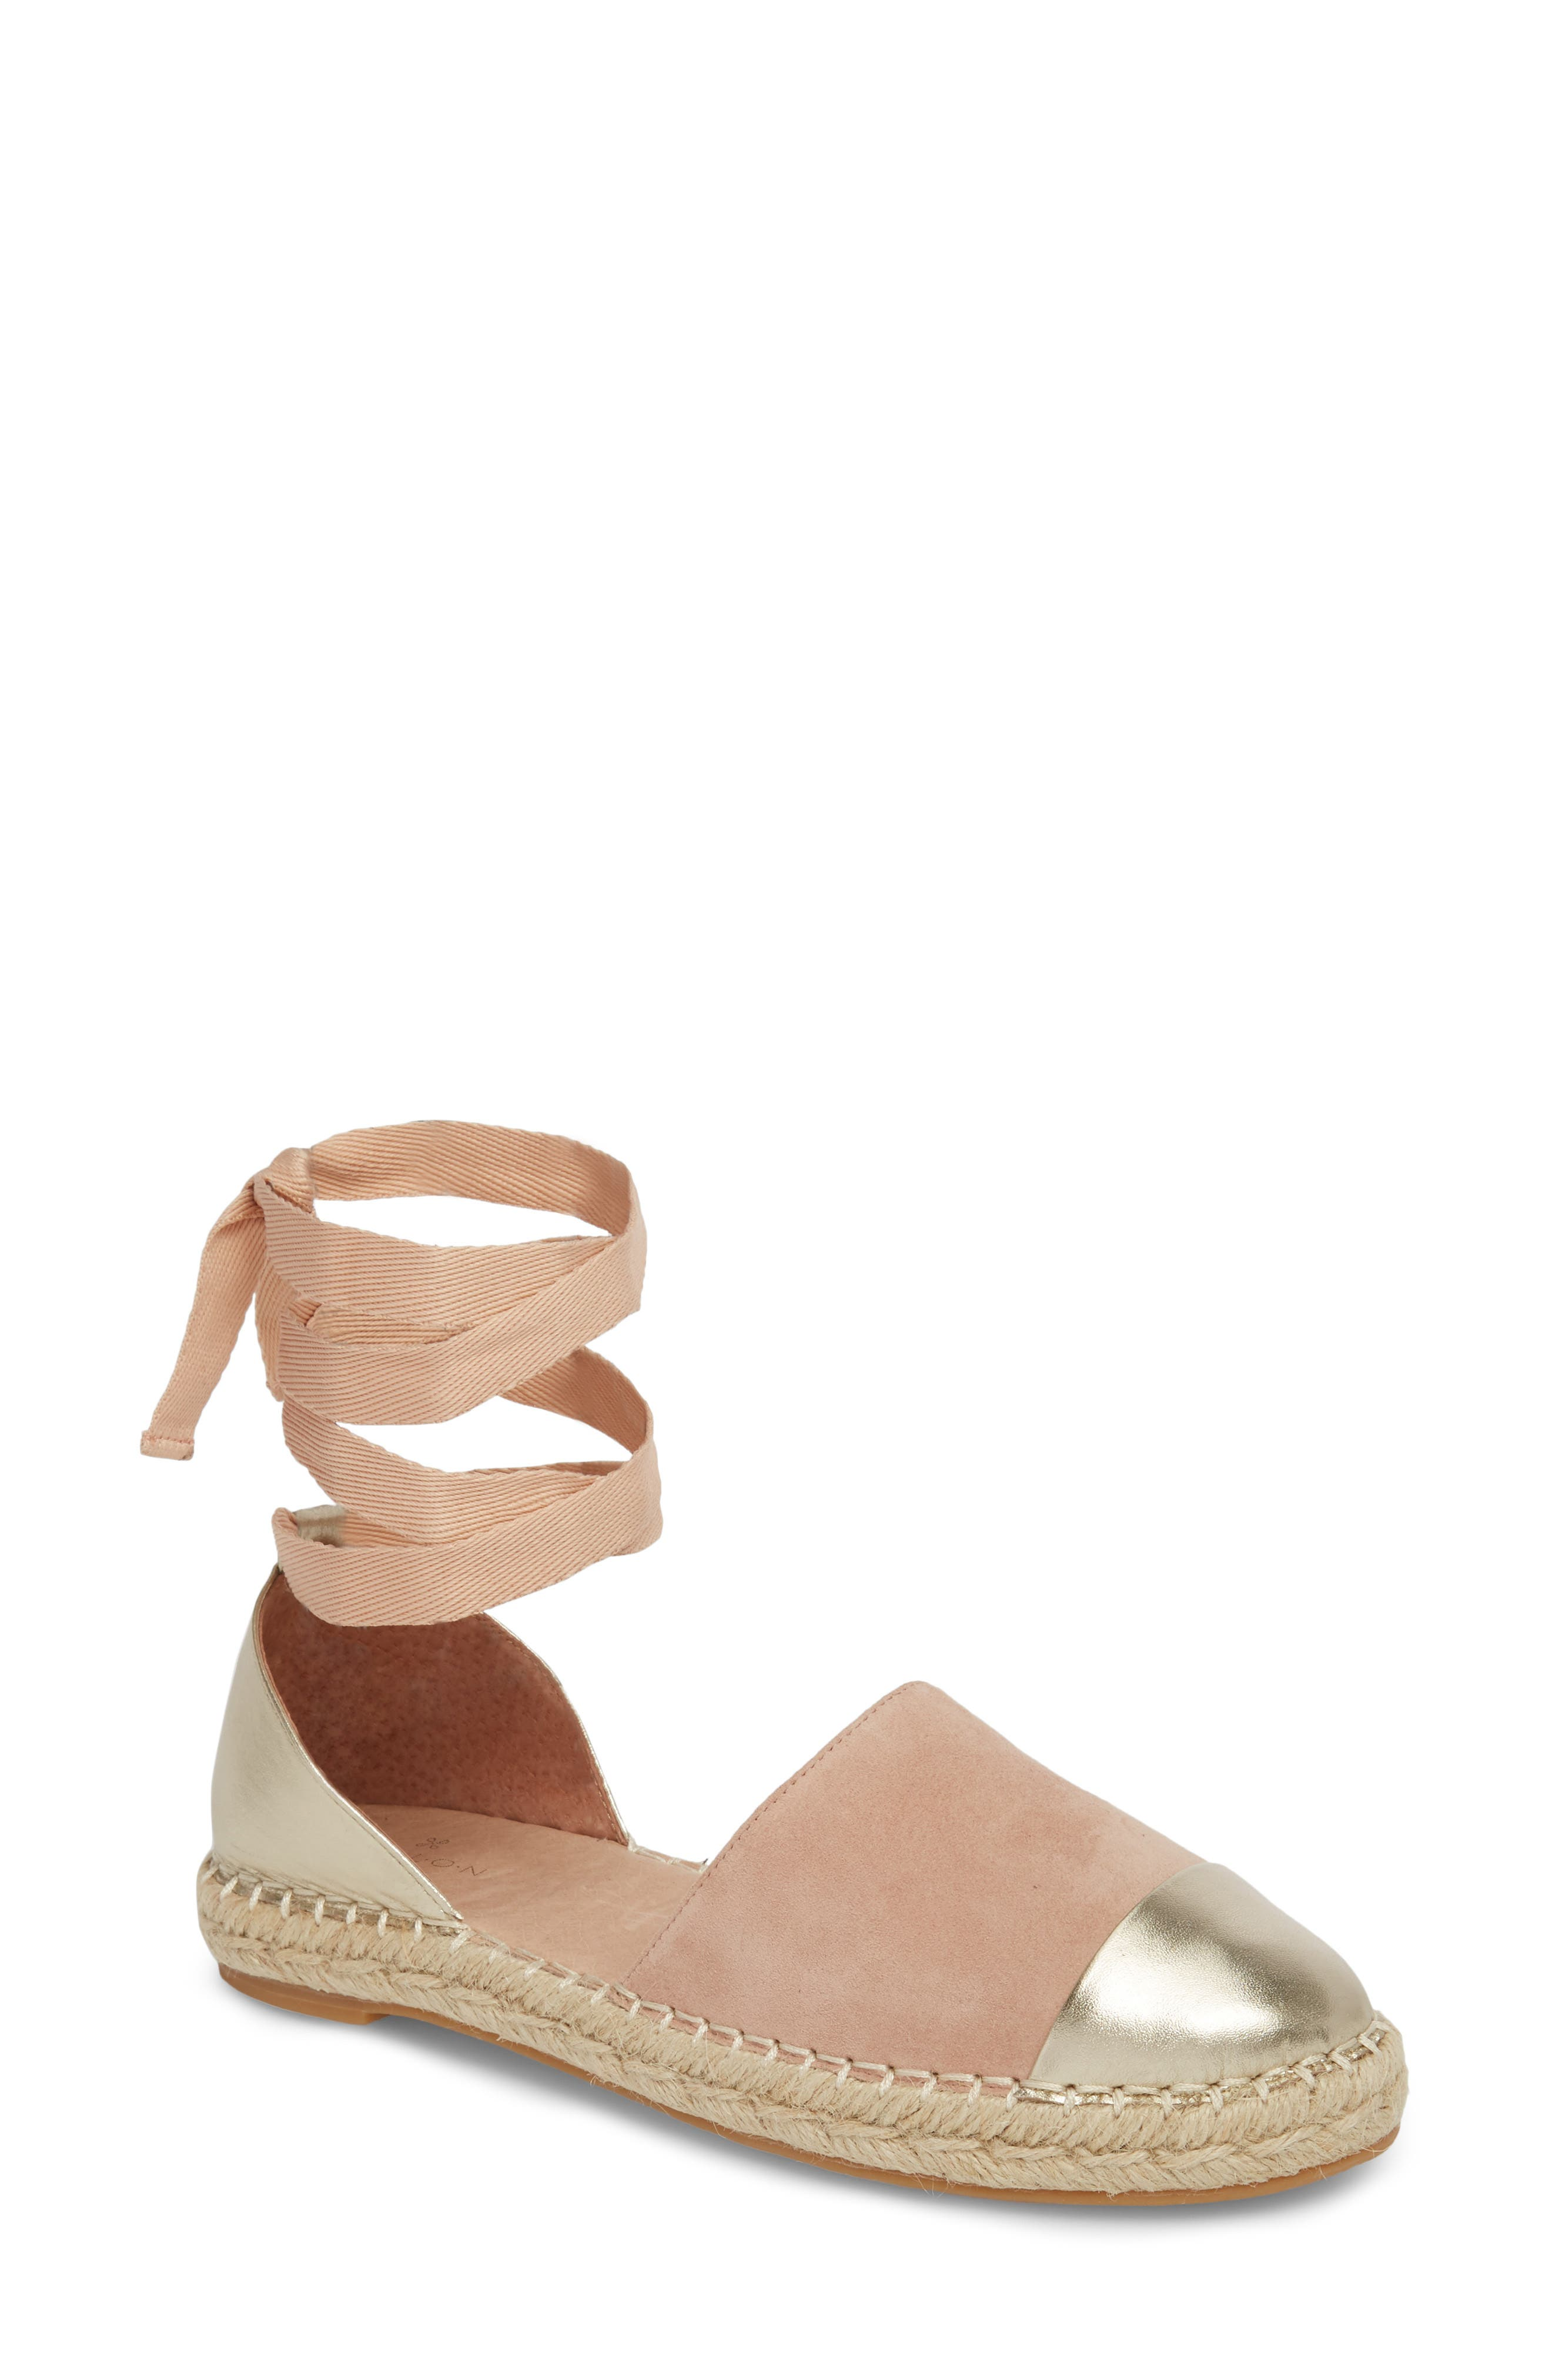 Cain Ankle-Tie Sandal,                         Main,                         color, 260